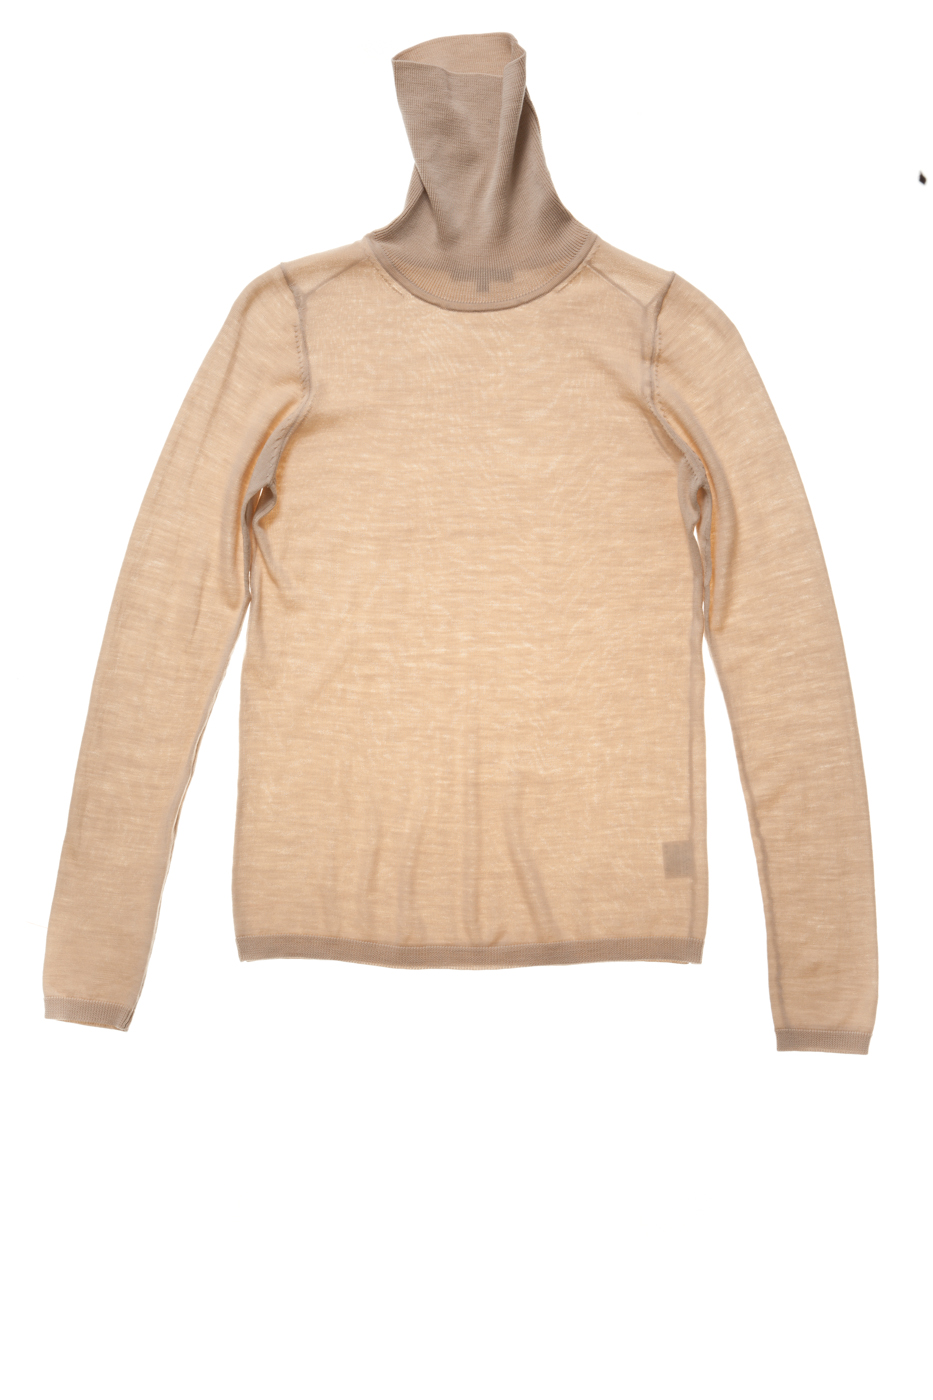 nancy superfine merino wool turtleneck